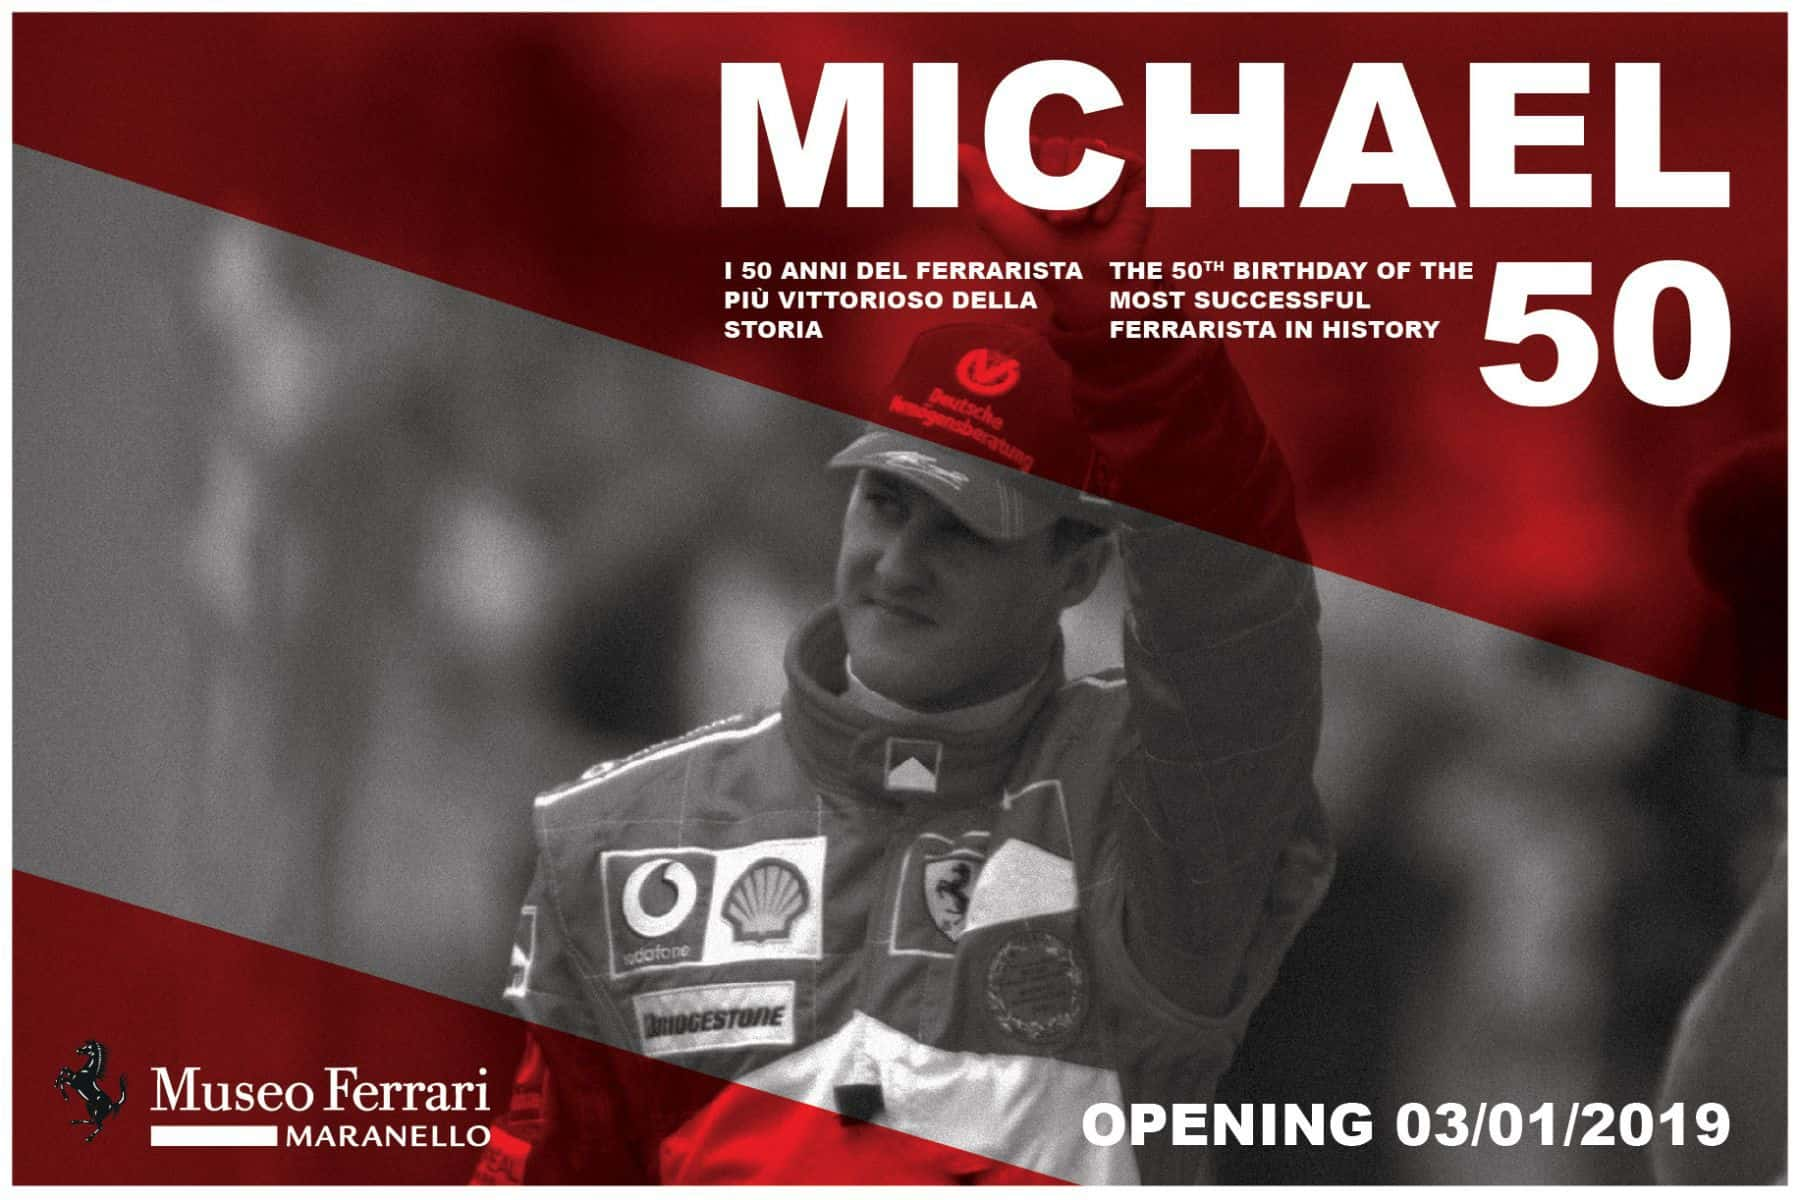 Michael Schumacher 50th birthday Maranello Ferrari F1 2019